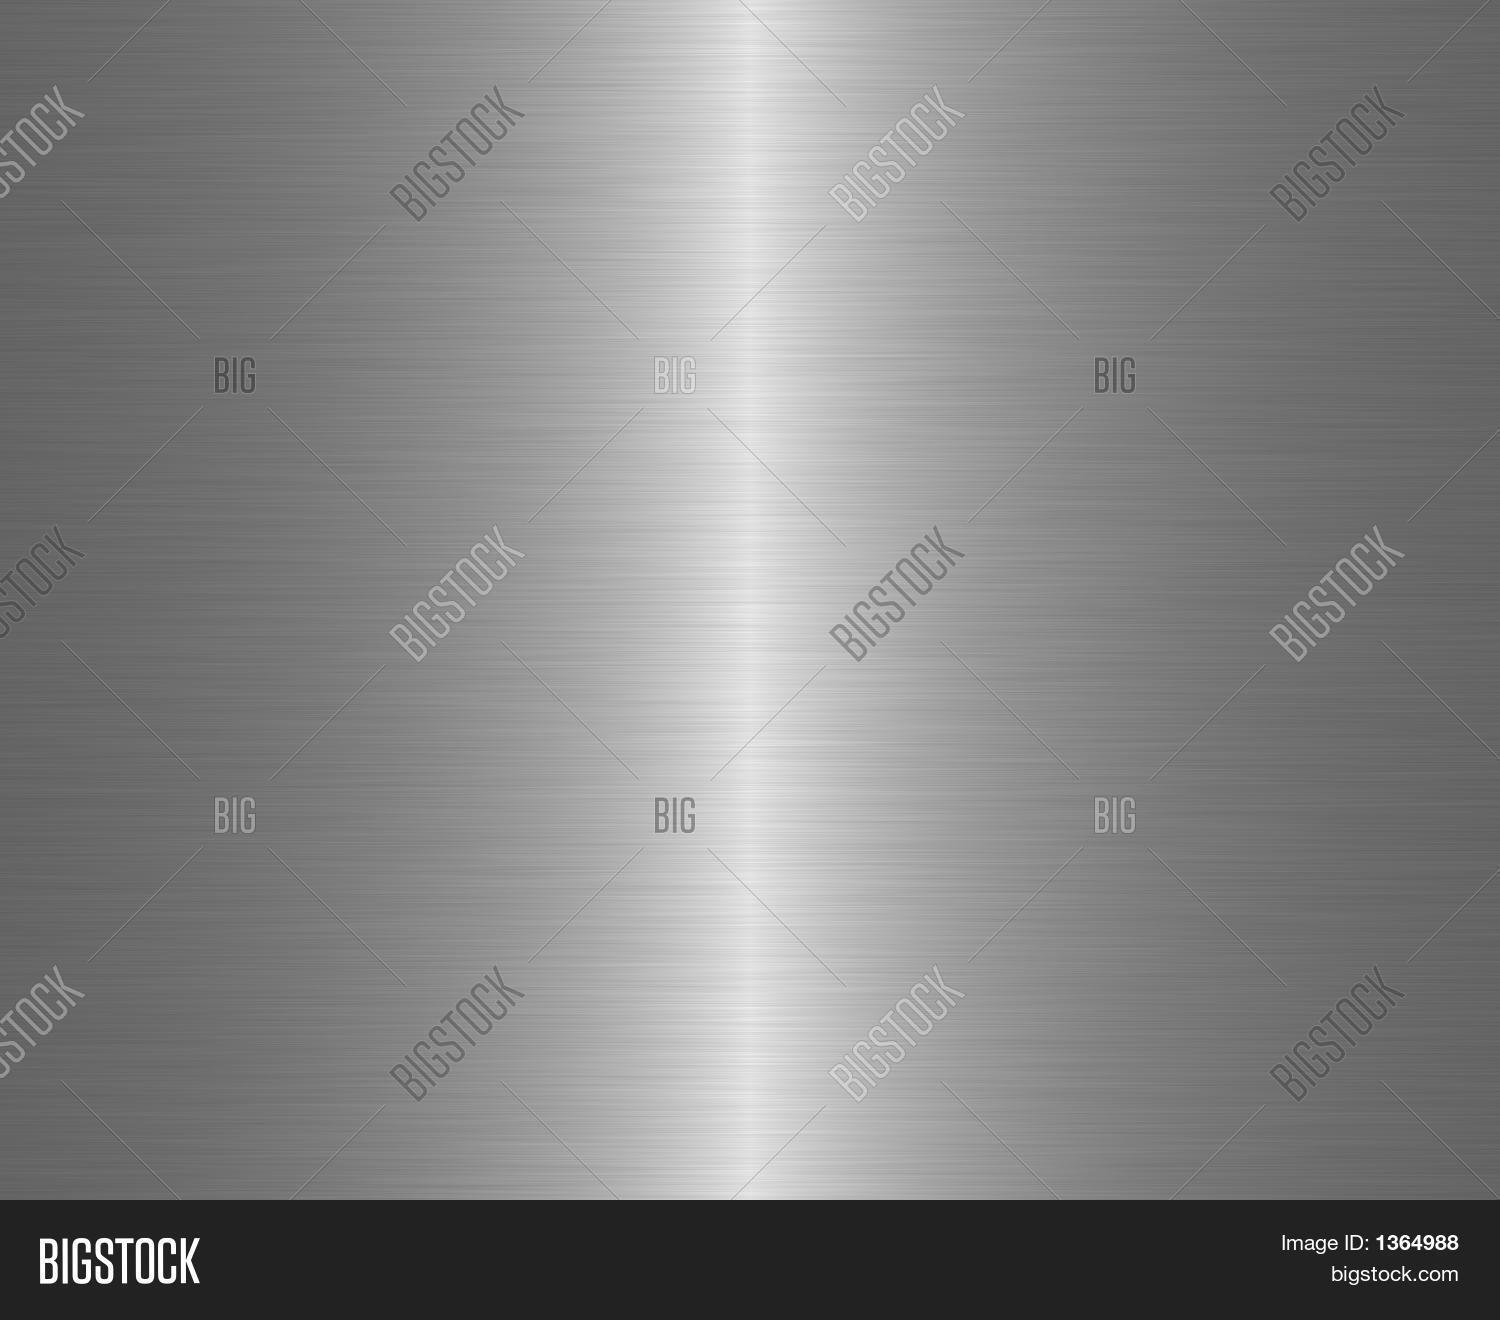 Brushed Metal Texture Background Linear Steel Sharp Image - cg1p364988c